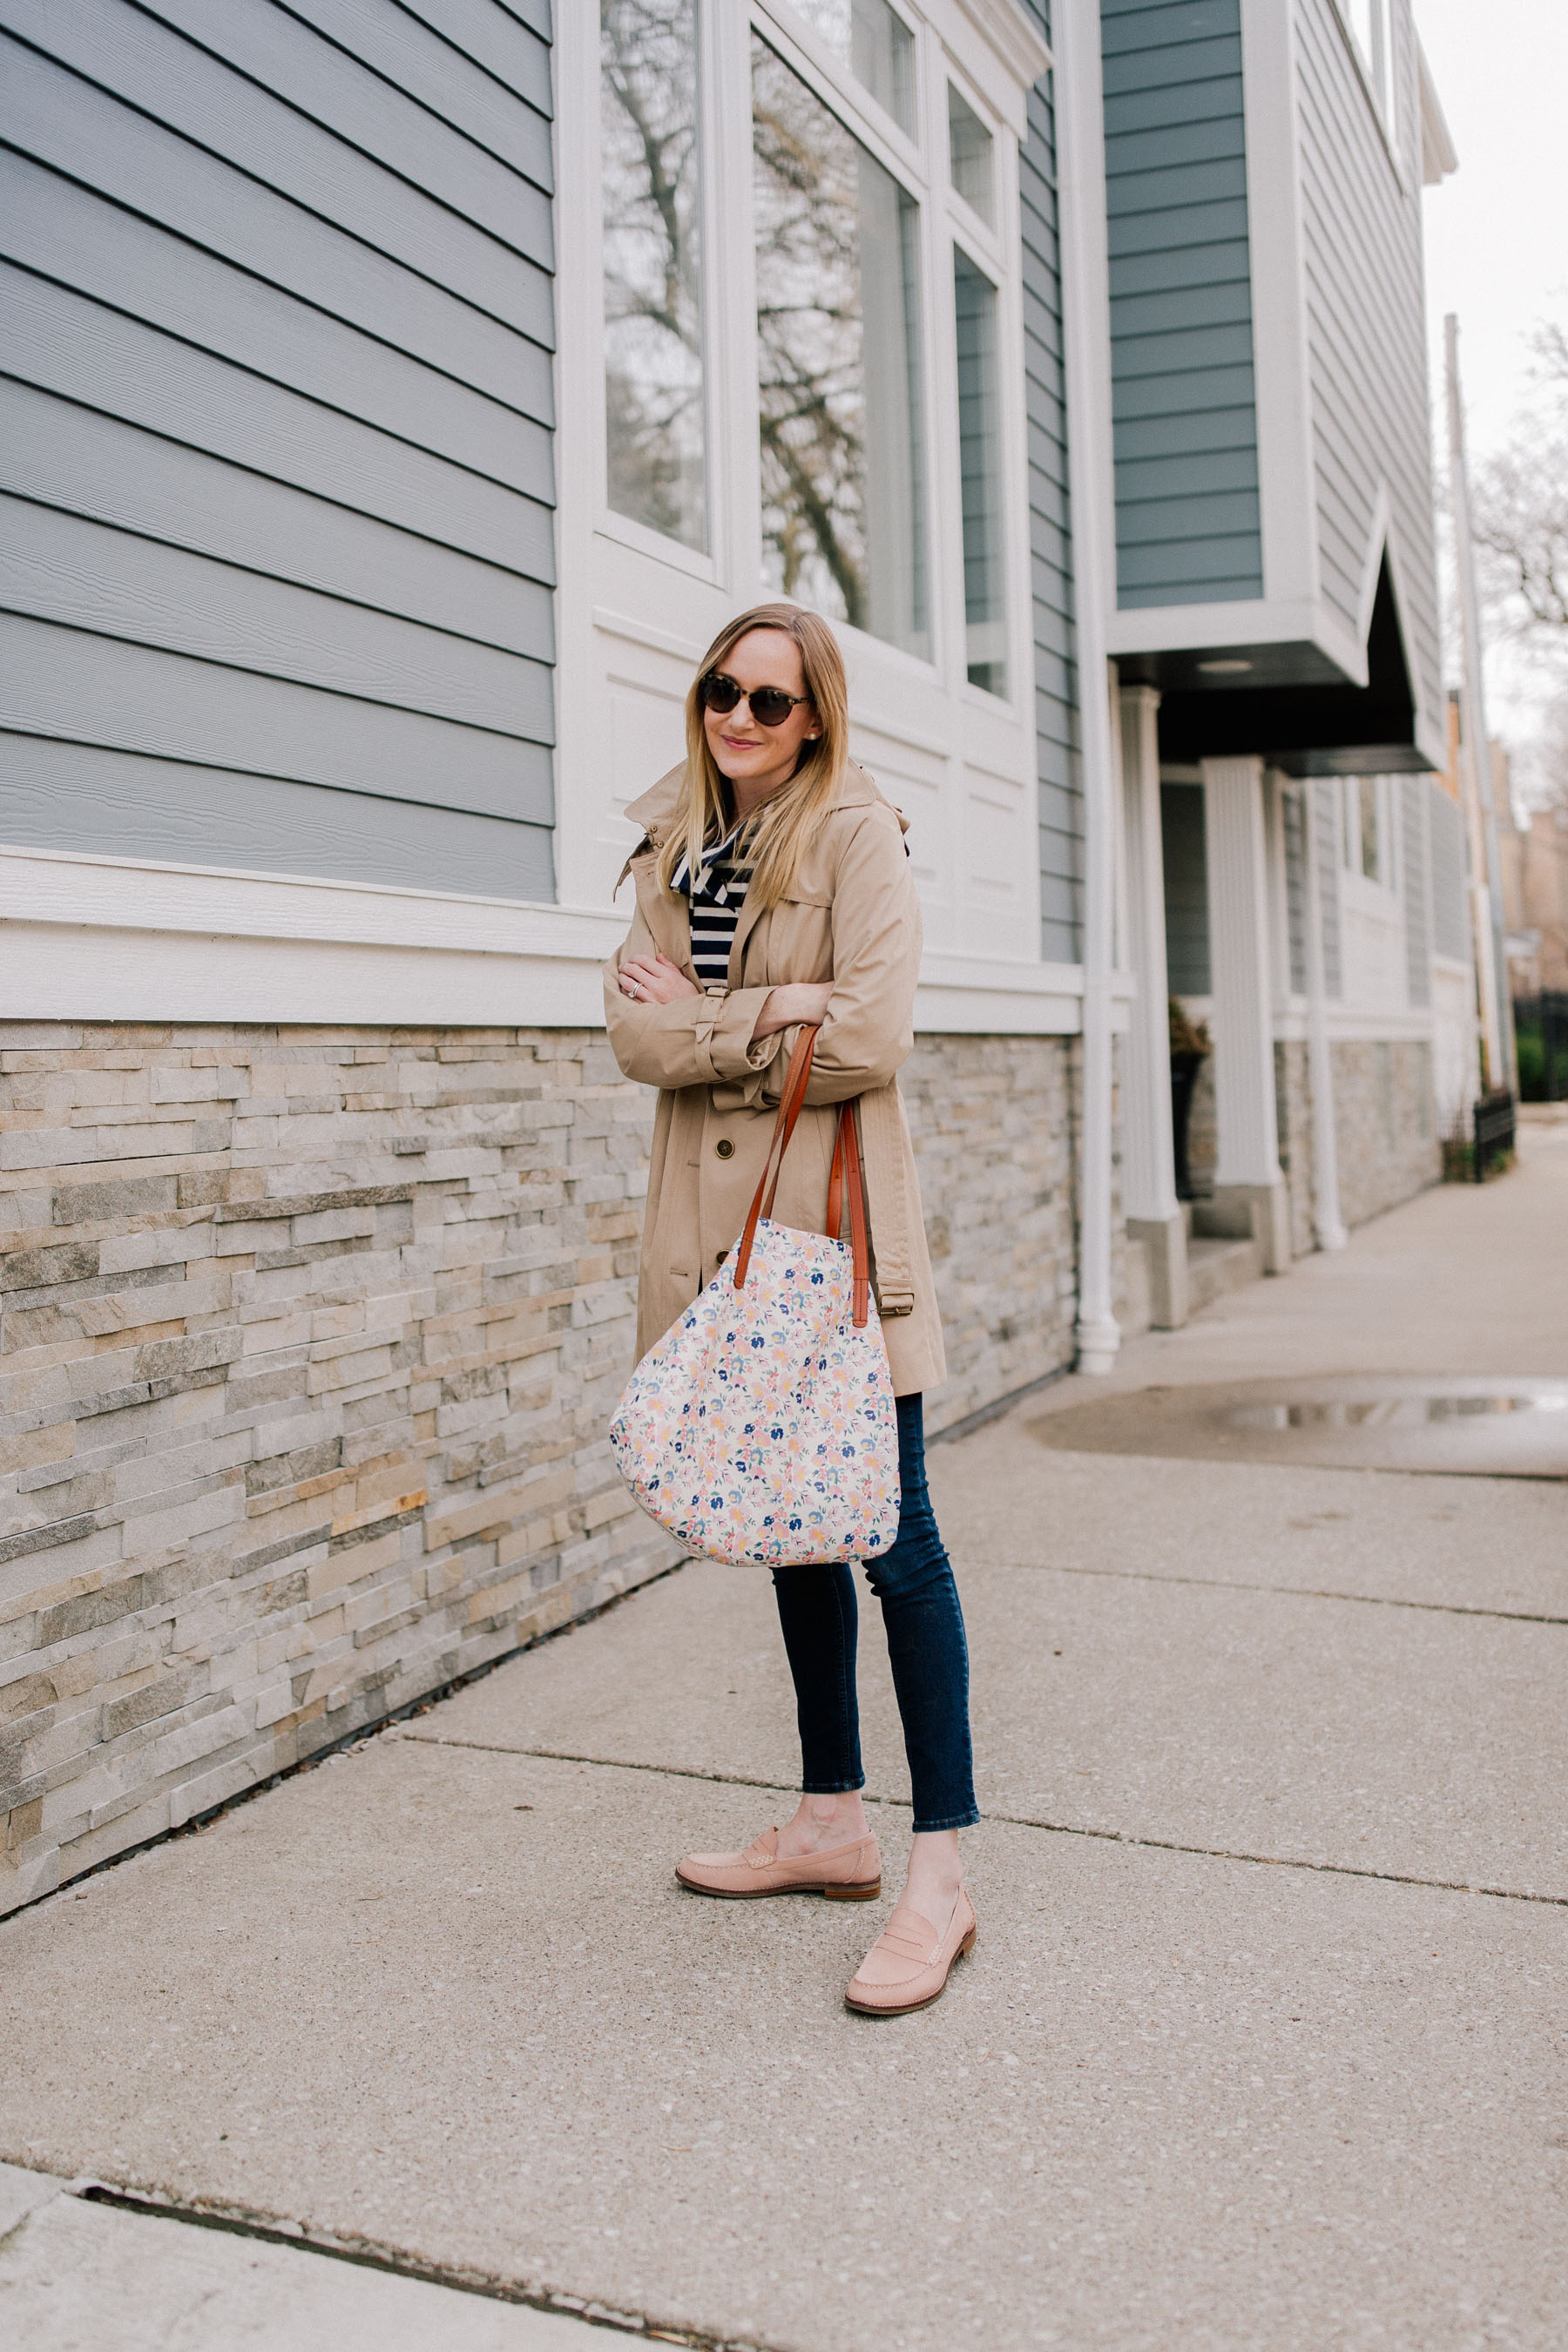 The Caitlin Wilson Brooklyn Tote